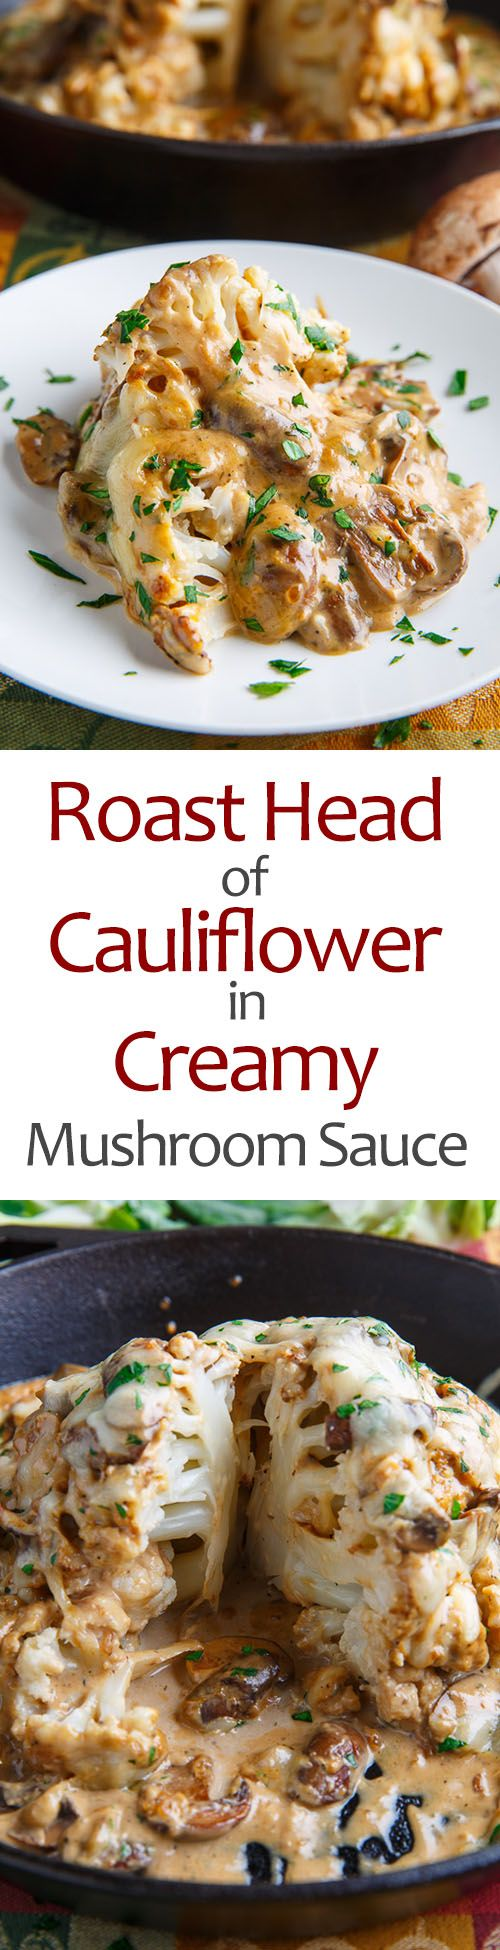 Vegan Roast Head of Cauliflower in Creamy Mushroom Sauce Recipe www.VeganFoodDaily.com